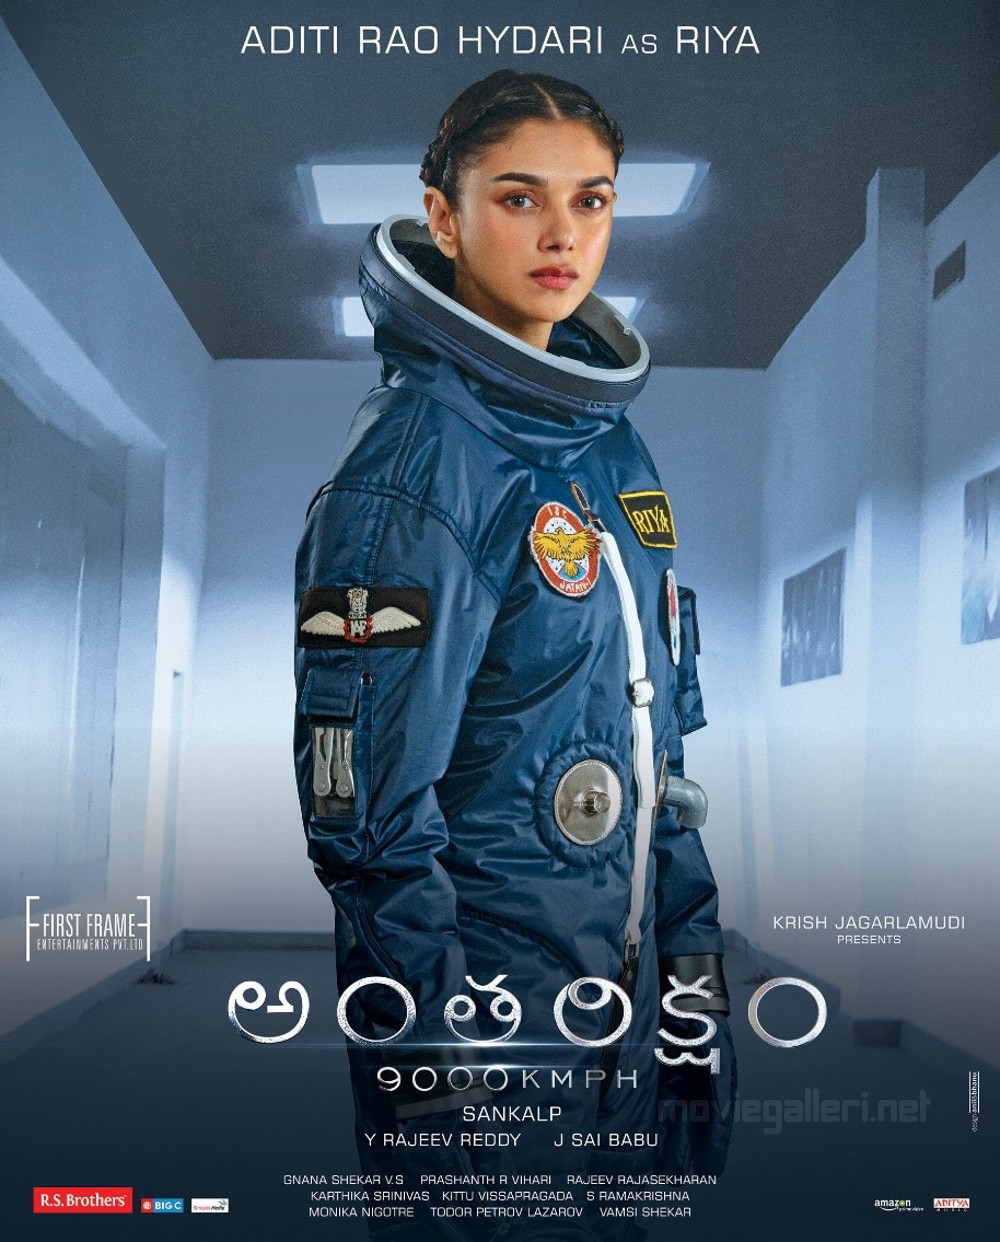 Actress Aditi Rao Hydari as Riya in Antariksham 9000 KMPH Movie Poster HD